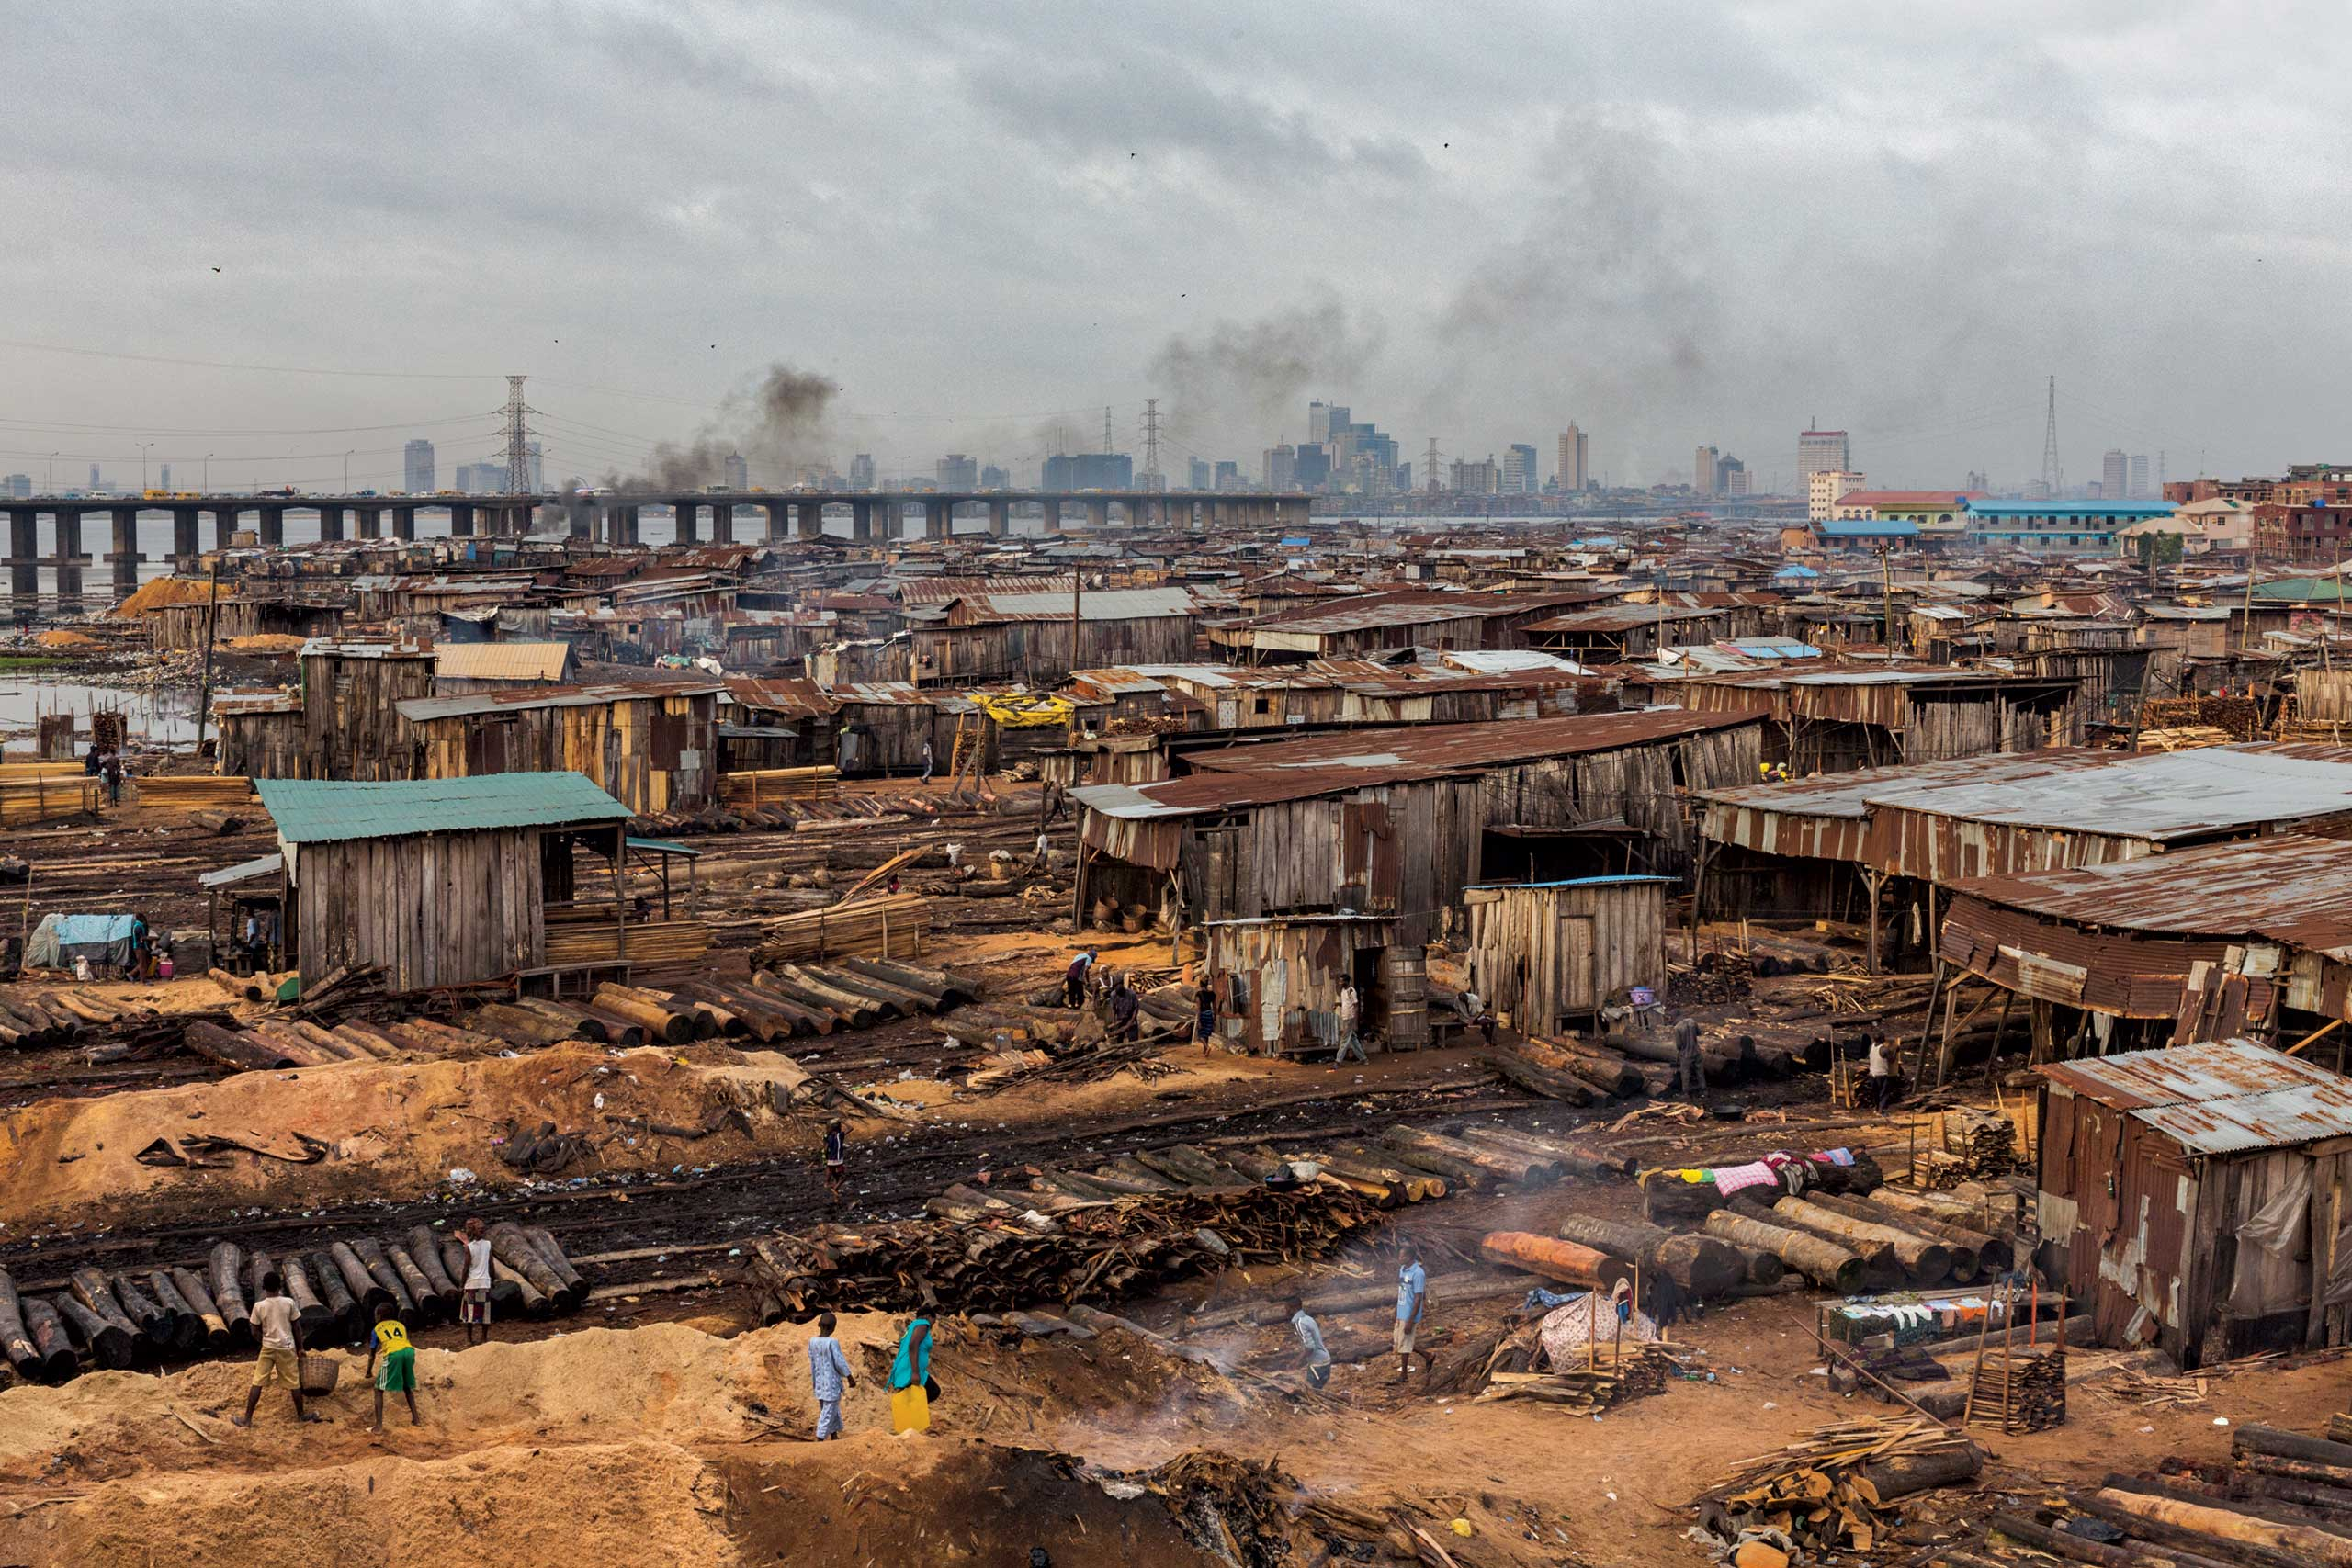 From the January issue of National Geographic magazine: Africa's First CityThousands live and work in the sawmill district on mainland Lagos, a patchwork of workshops and shanties that twice in recent years has been devastated by fires. The towers where Nigeria's wealth is made loom across Lagos Lagoon behind the Third Mainland Bridge.